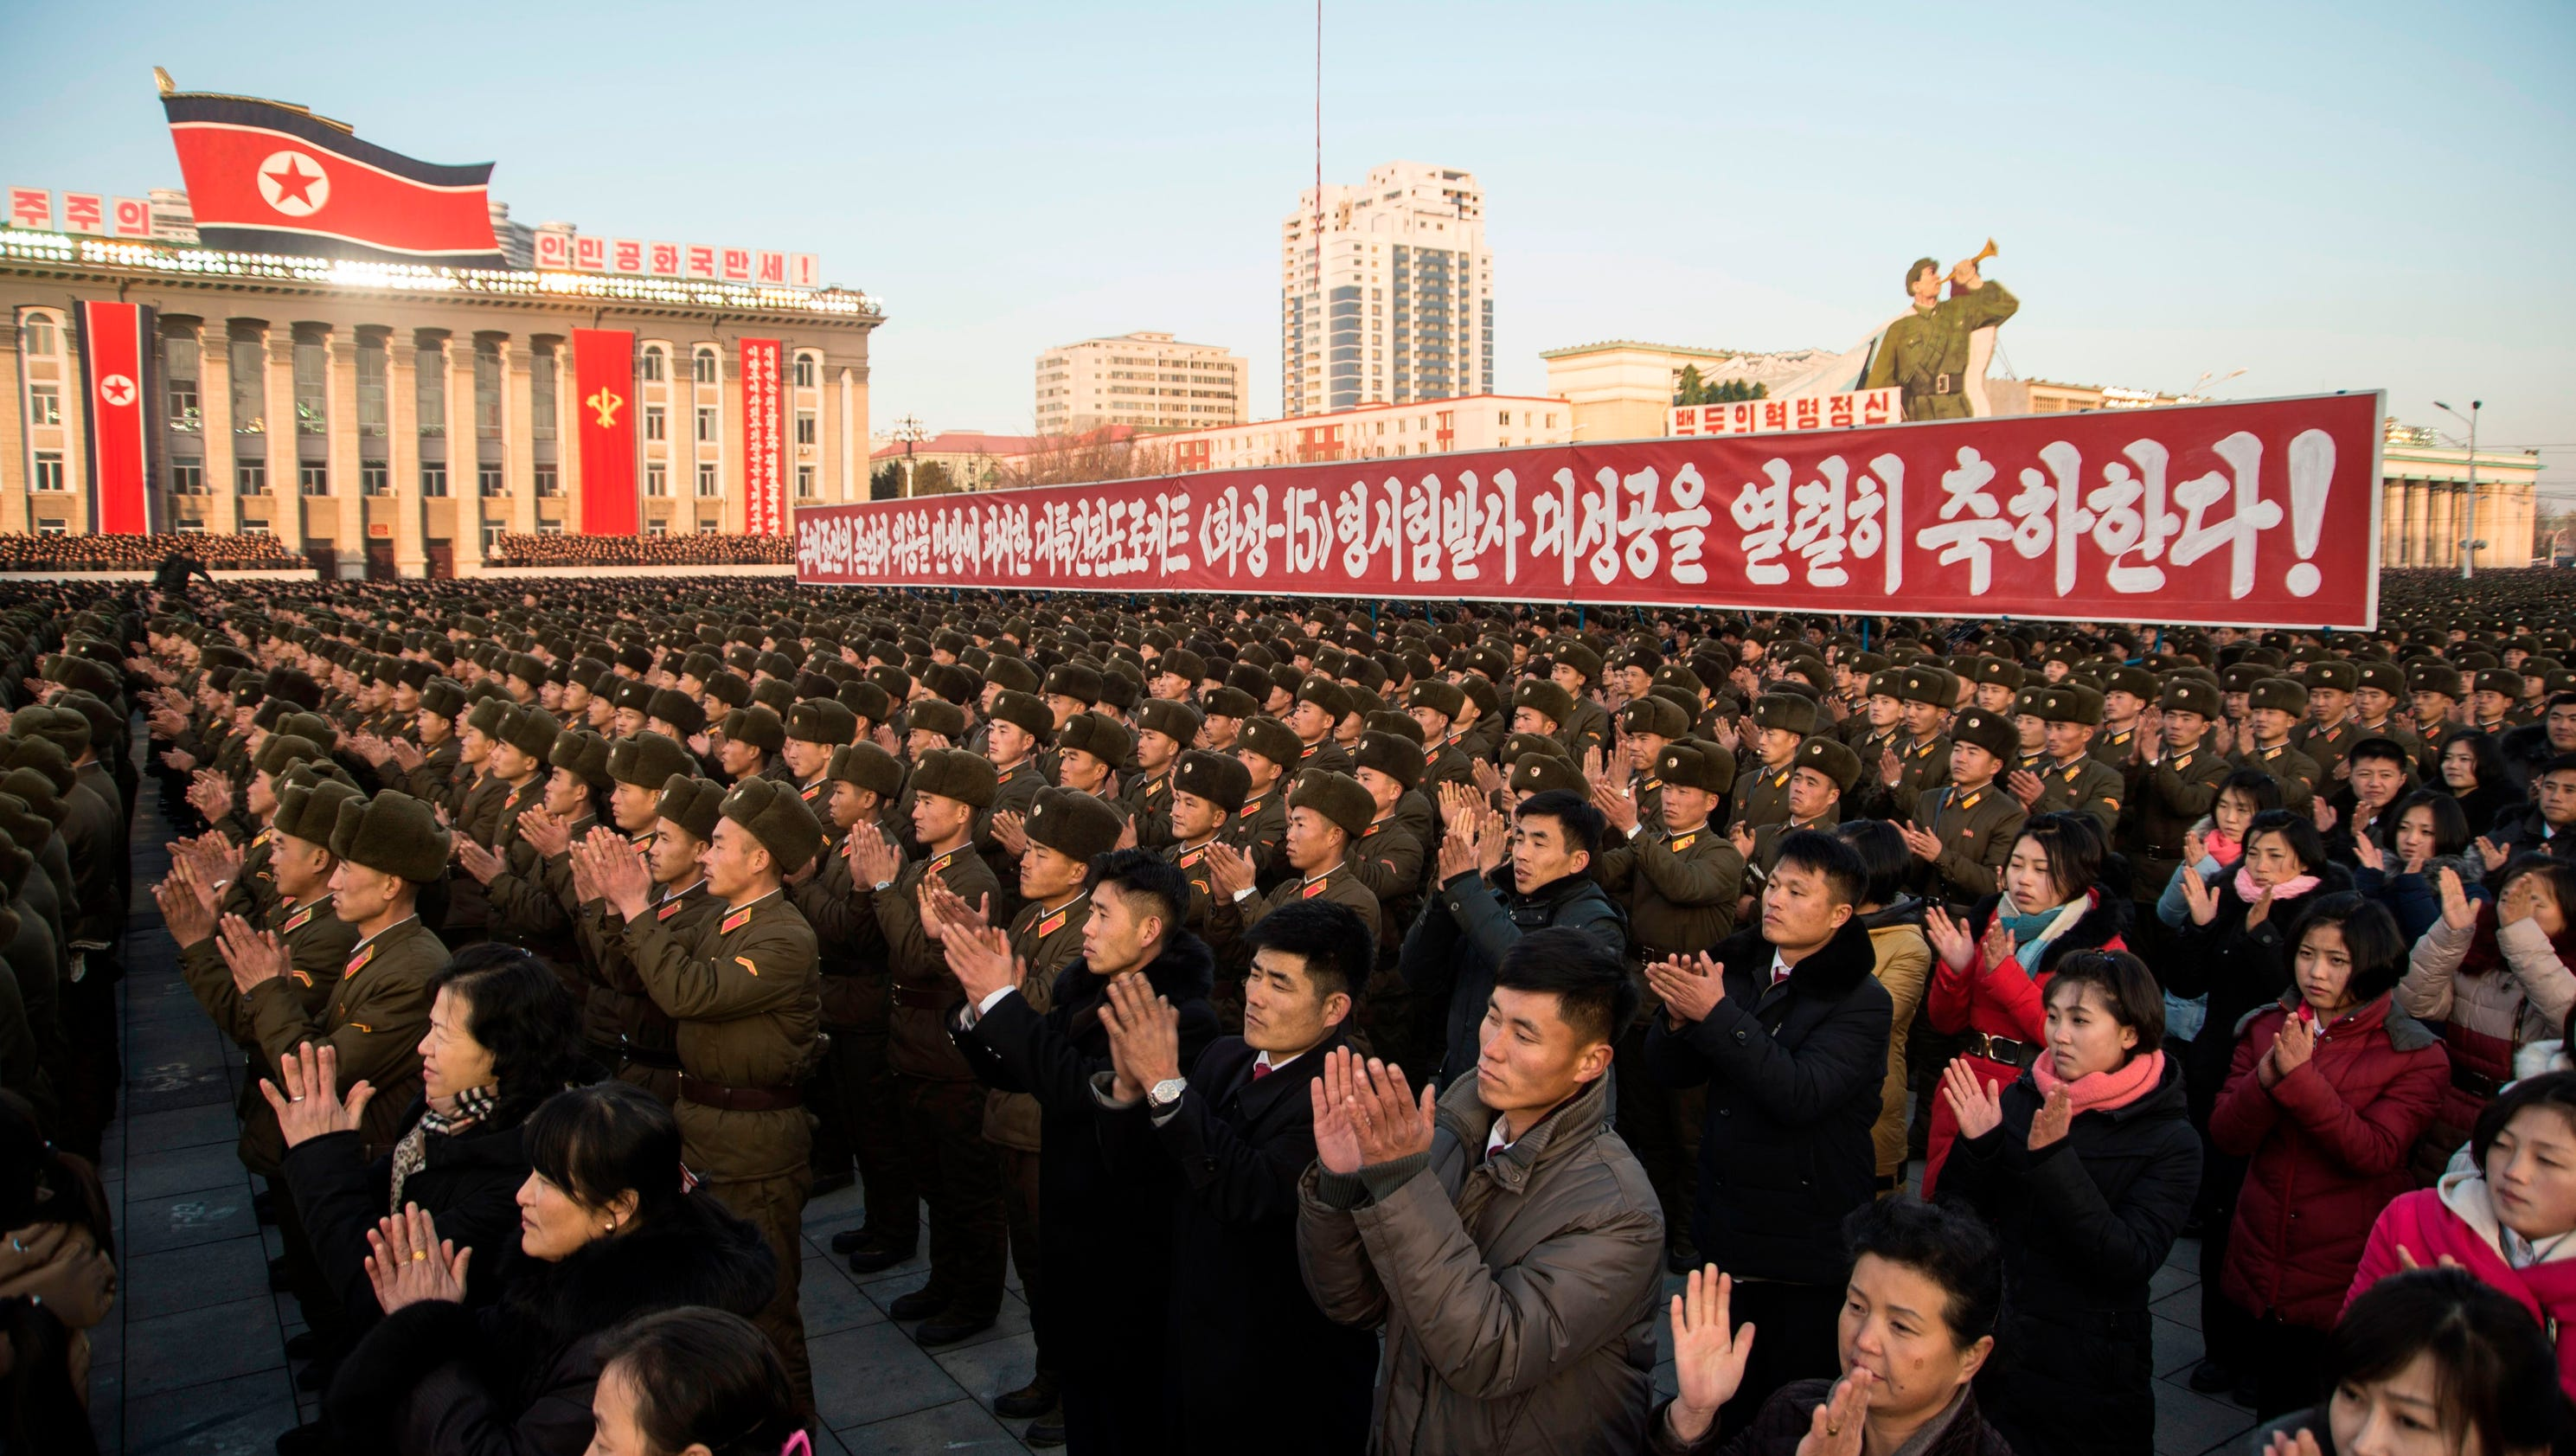 Is Kim Jong Un crazy? The North Korea leader is just a cold calculator, experts say